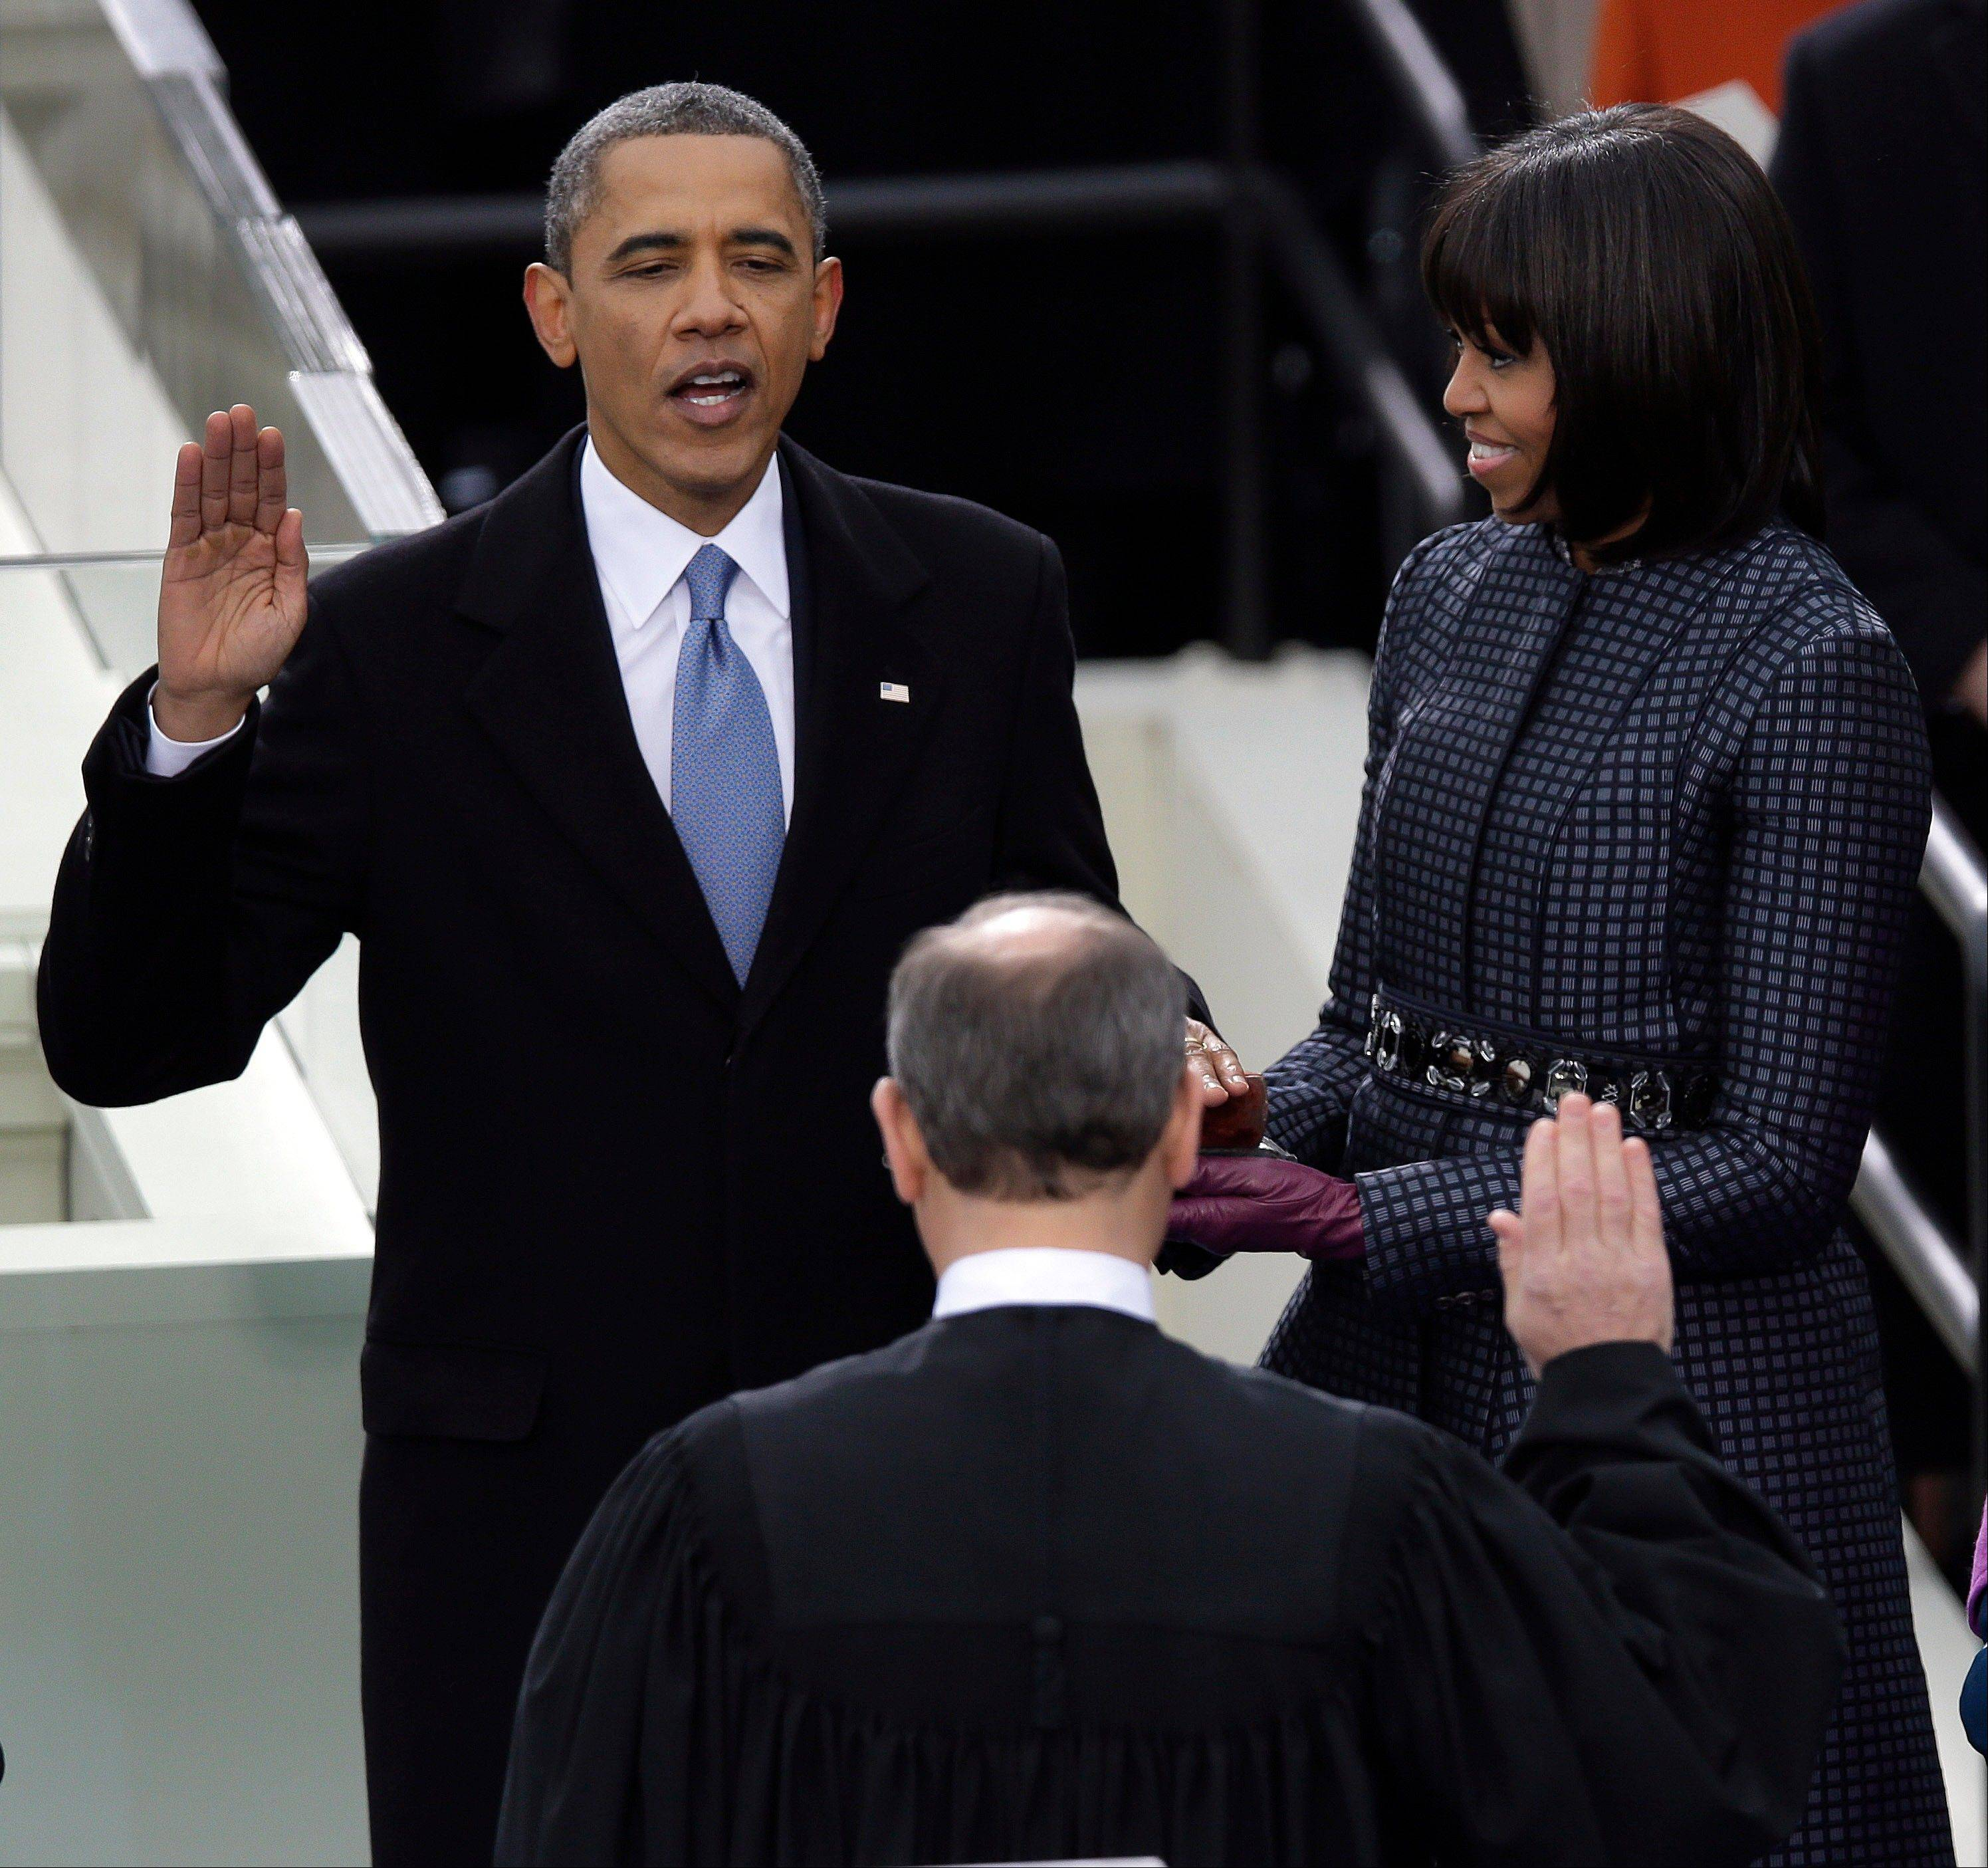 President Barack Obama receives the oath of office from Chief Justice John Roberts as first Lady Michelle holds the bible at the ceremonial swearing-in at the U.S. Capitol during the 57th Presidential Inauguration in Washington, Monday, Jan. 21, 2013.